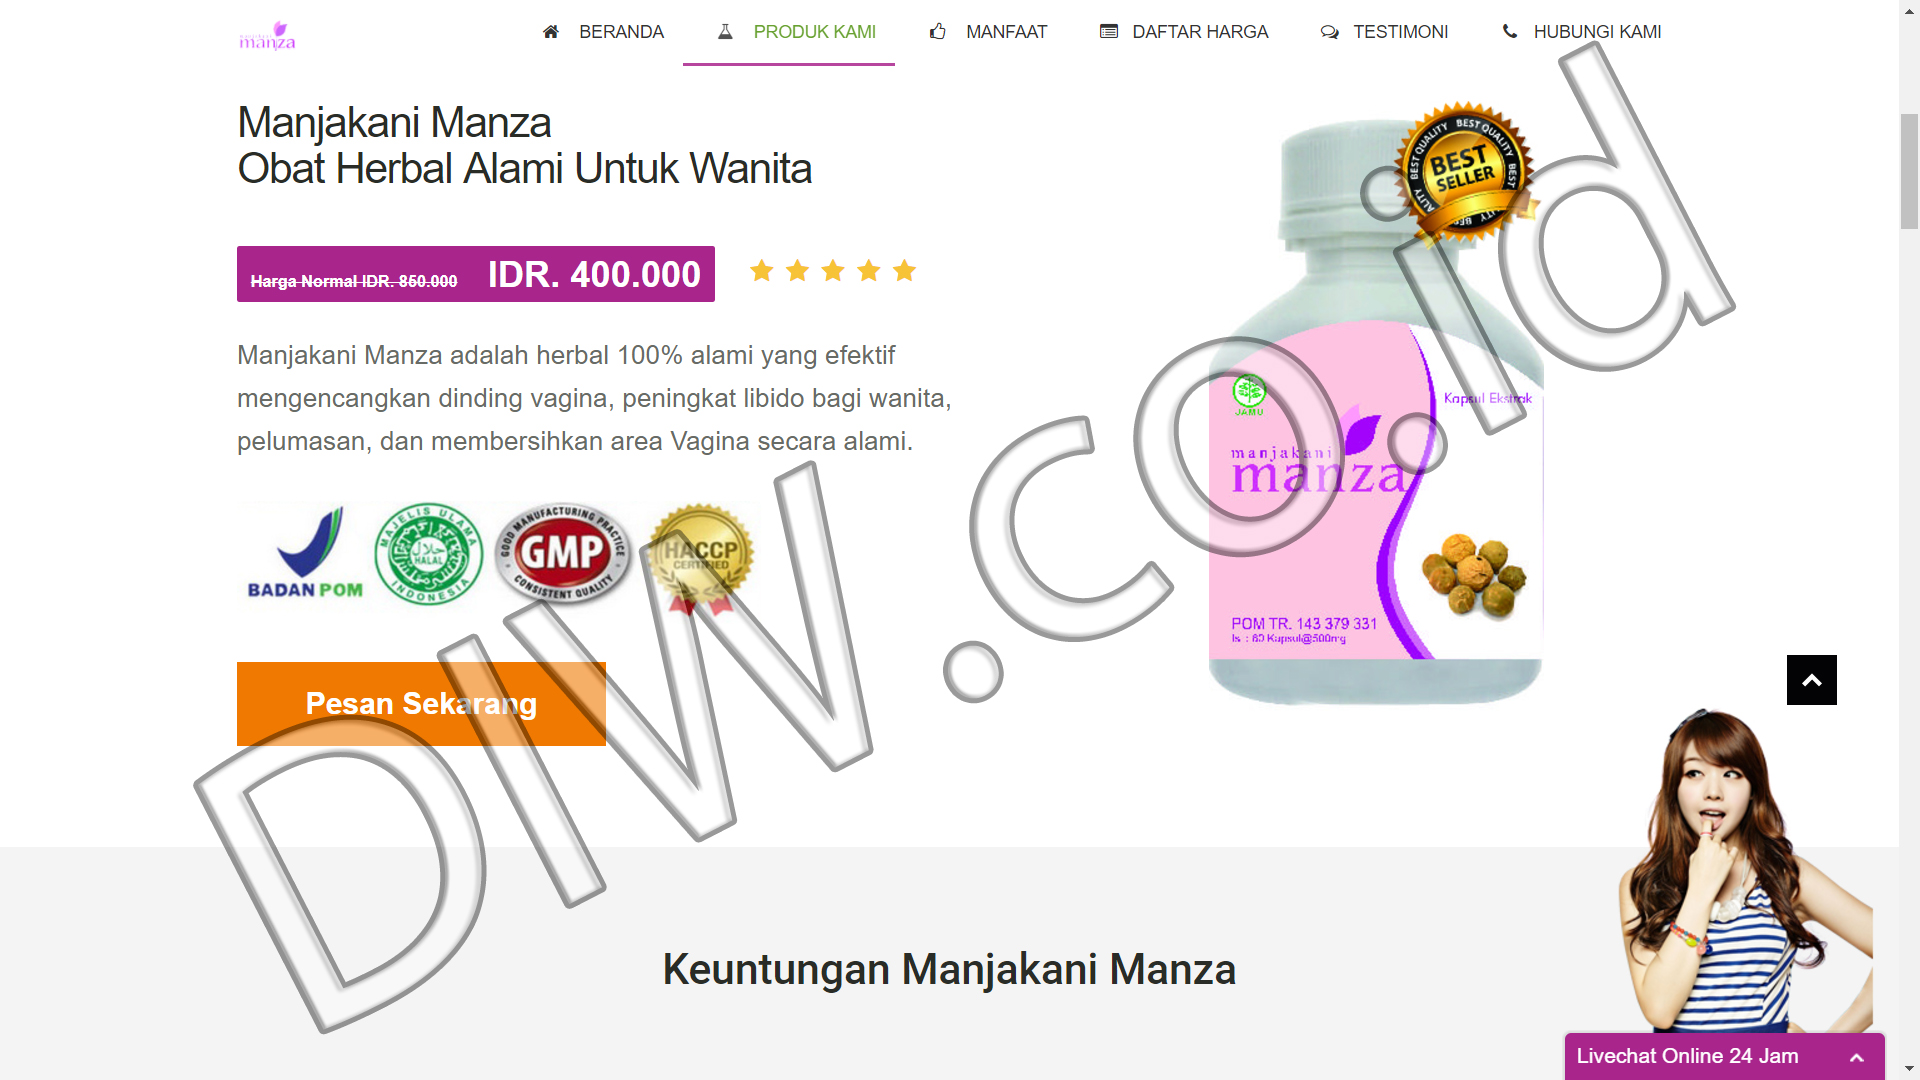 Portfolio 2 - Manjakani Manza - Andri Sunardi - Freelancer - Web Developer - CEO DIW.co.id